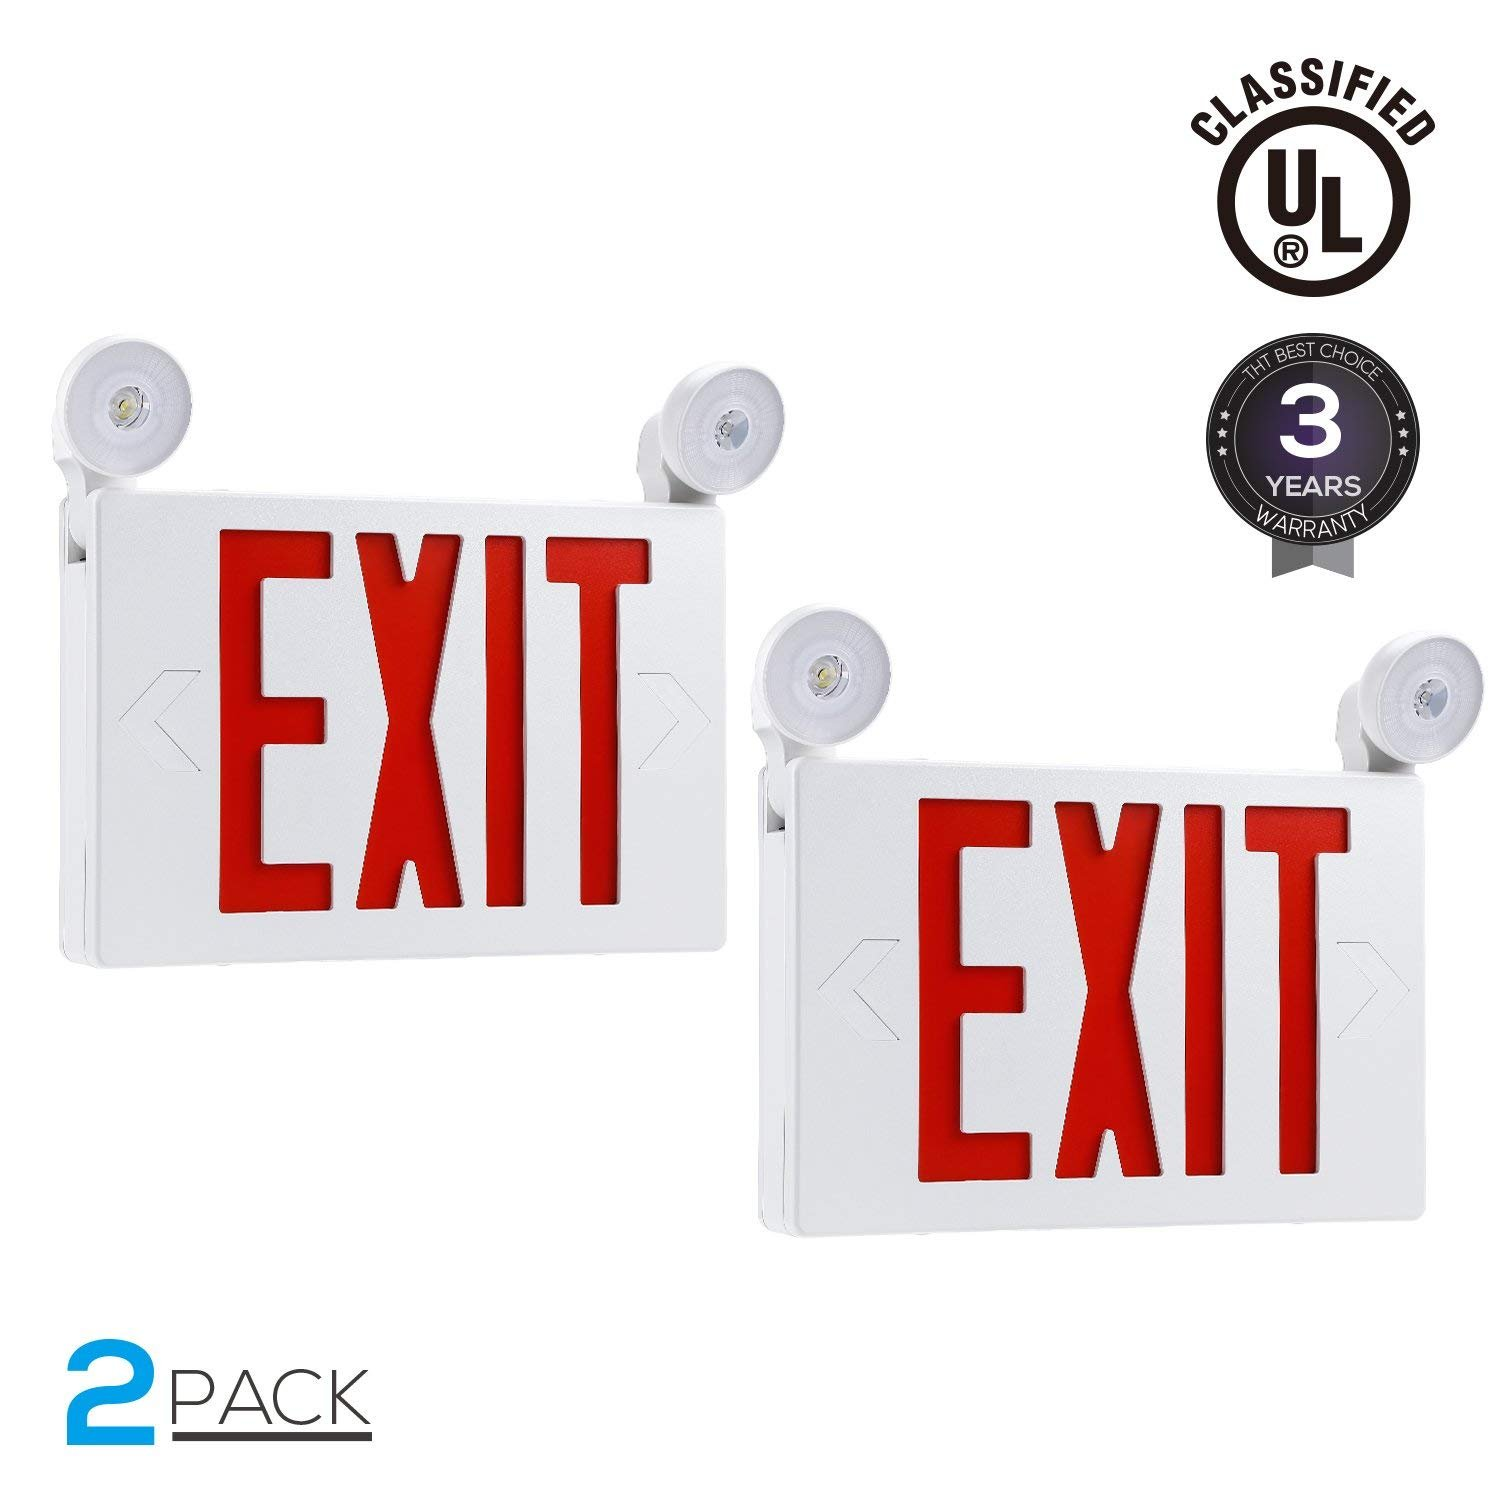 Red LED Exit Sign with UL Listed Emergency Light, AC 120V/277V, Battery Included, Ceiling/Side/Back Mount Sign Light, for Hotels, Restaurants, Shopping Malls, Hospitals, Pack of 2